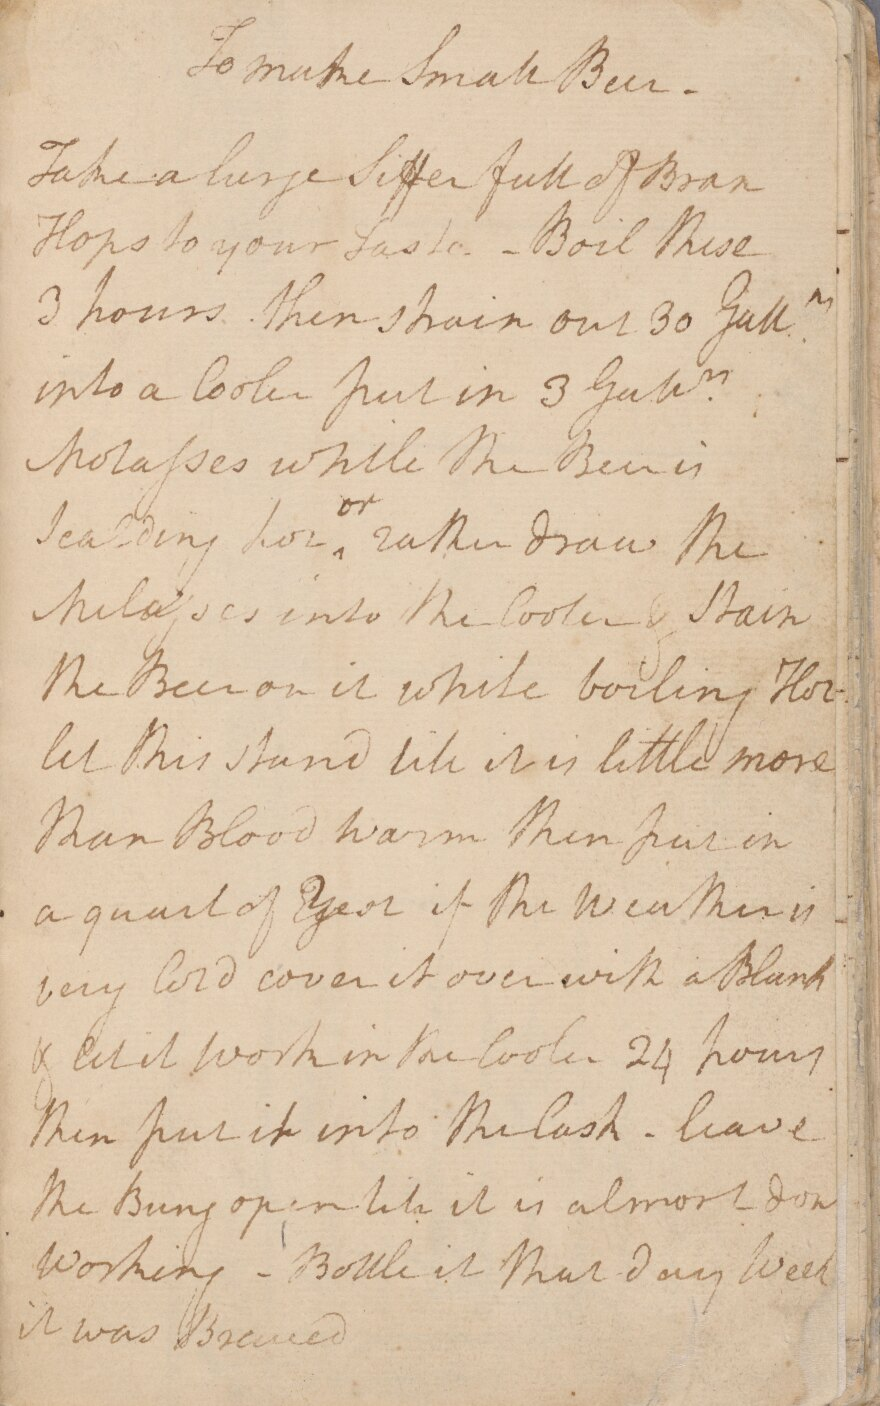 """The NYPL's digital holdings include the papers of notable Americans: letters from Walt Whitman, journals by Nathaniel Hawthorne, receipts from Alexander Hamilton --€"""" and George Washington's recipe for """"small beer."""" (A transcription is available <a href=""""http://exhibitions.nypl.org/treasures/items/show/130"""">here</a>.)"""